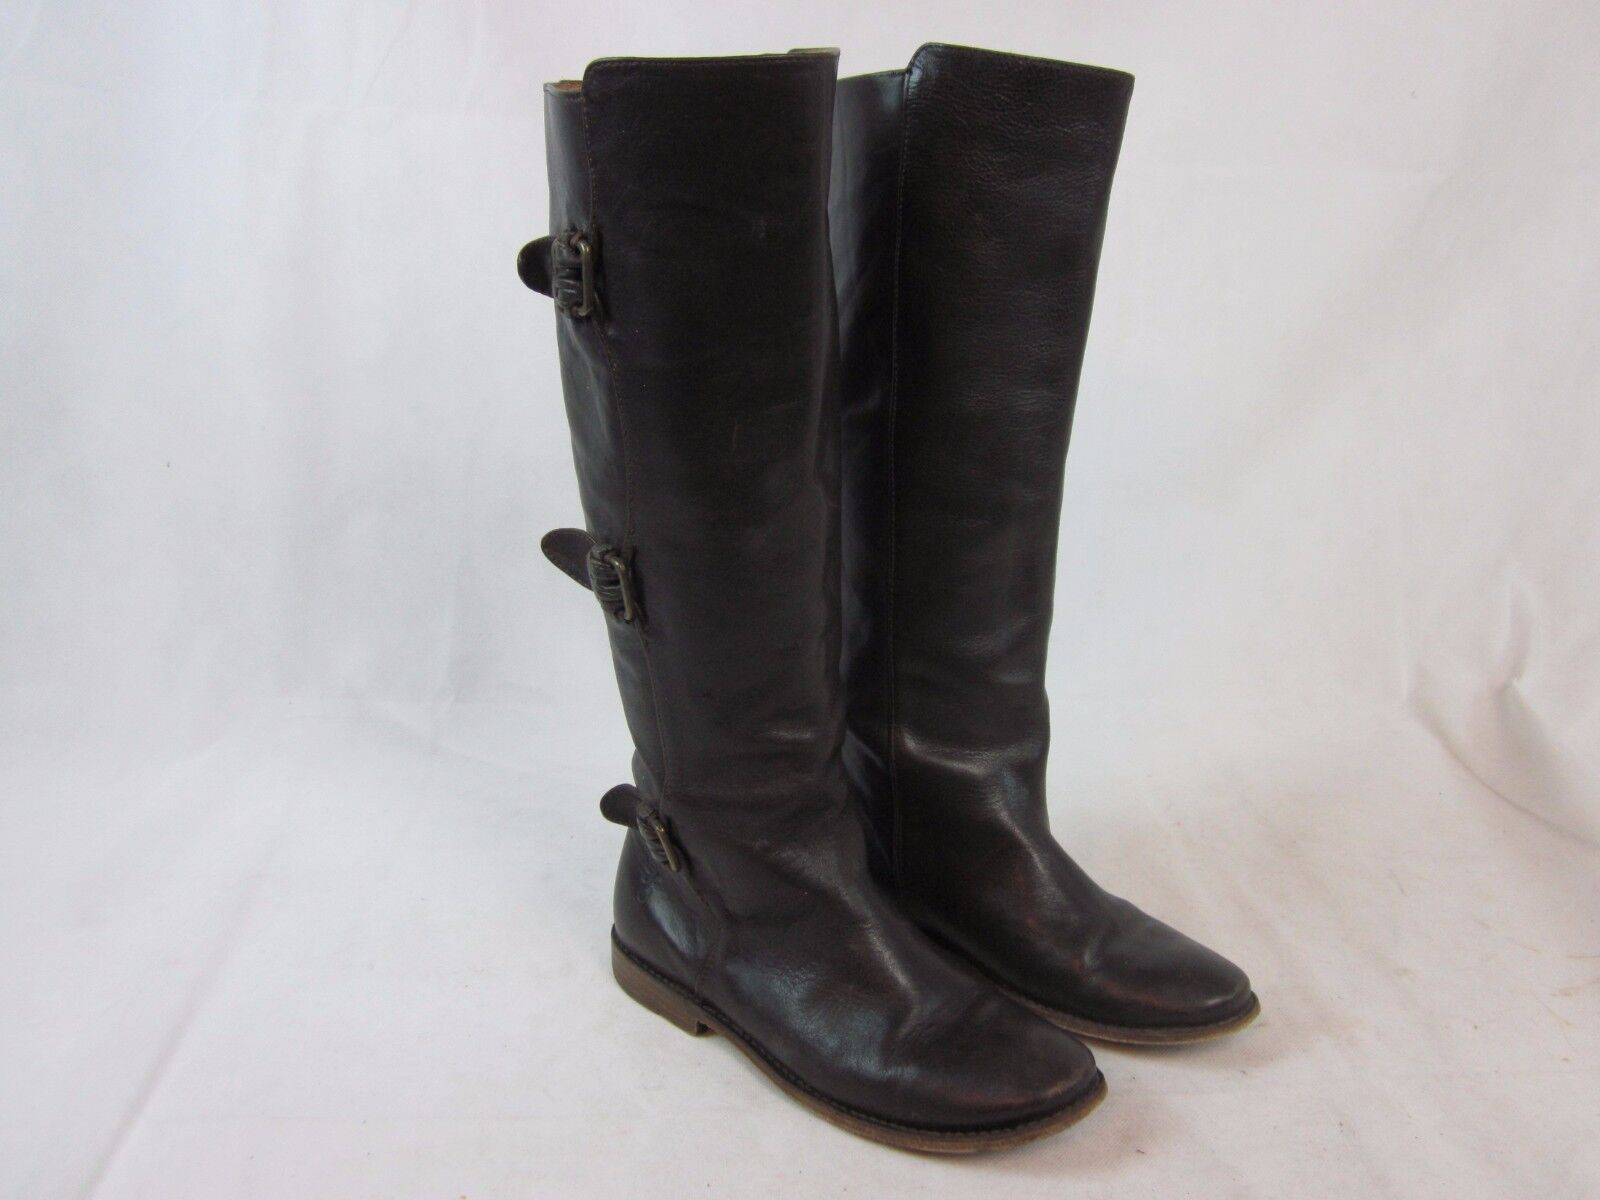 Women's FRYE 77066 'Paige Tall Buckle' Brown Leather Knee High Boots Sz 6 B